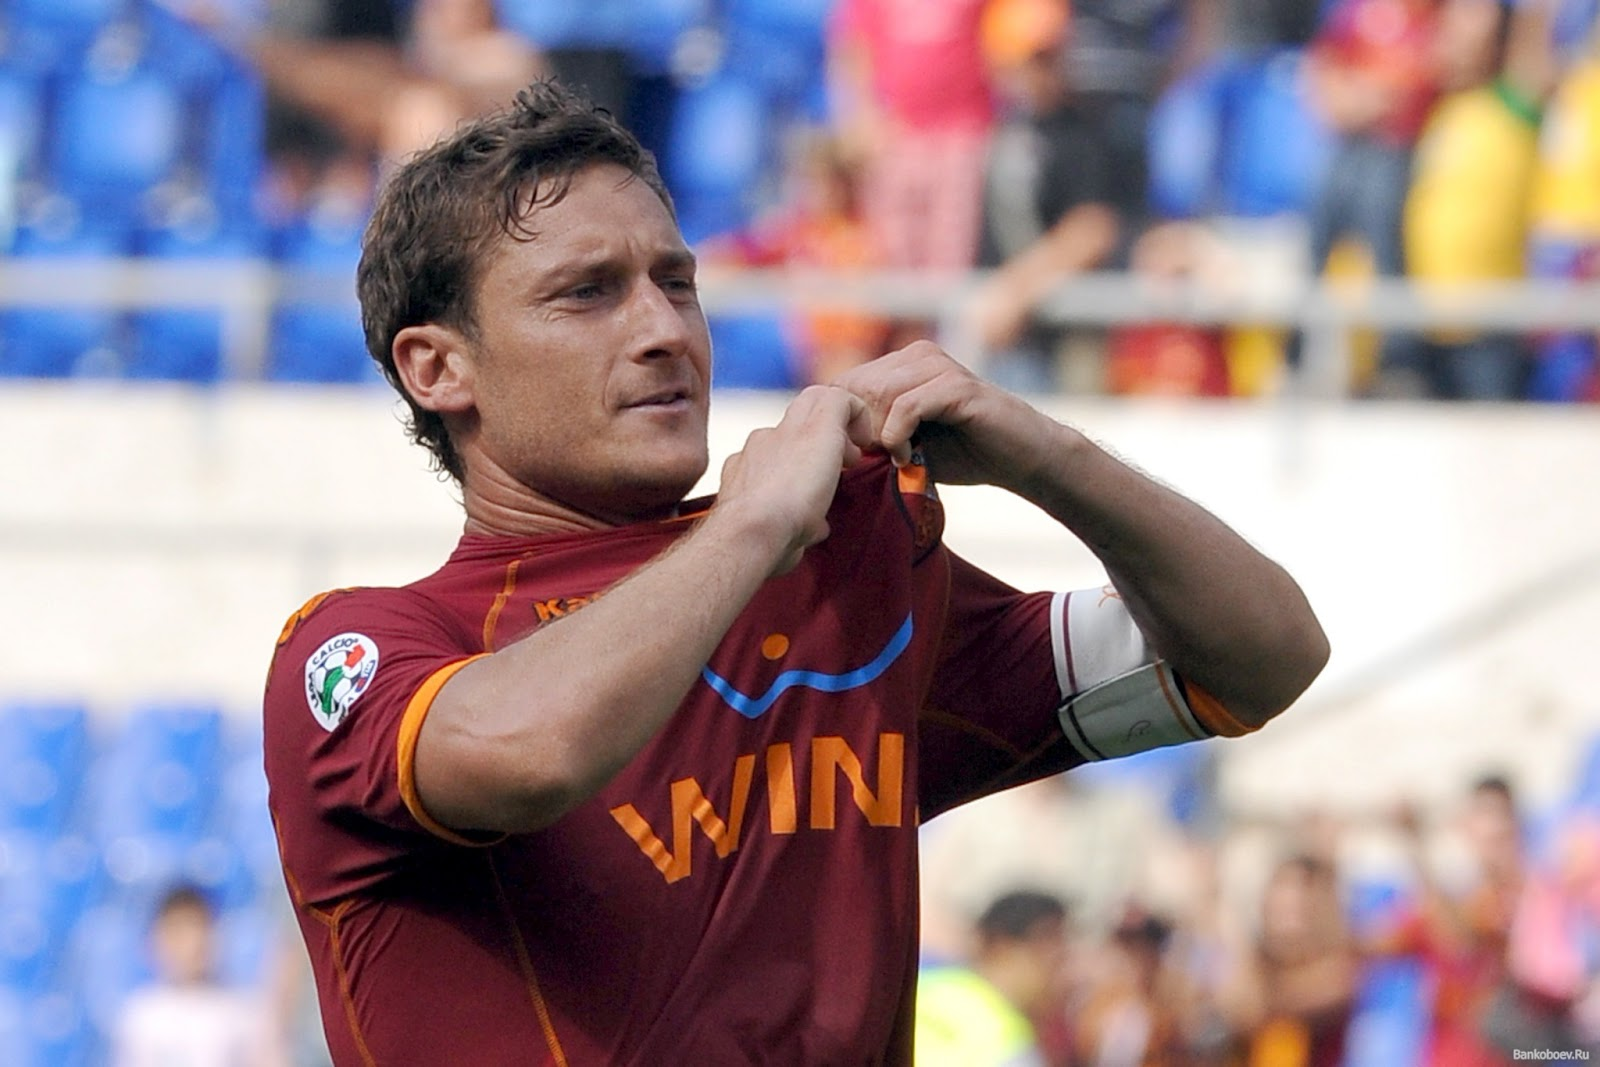 ... totti latest hd wallpaper francesco totti latest hd wallpaper